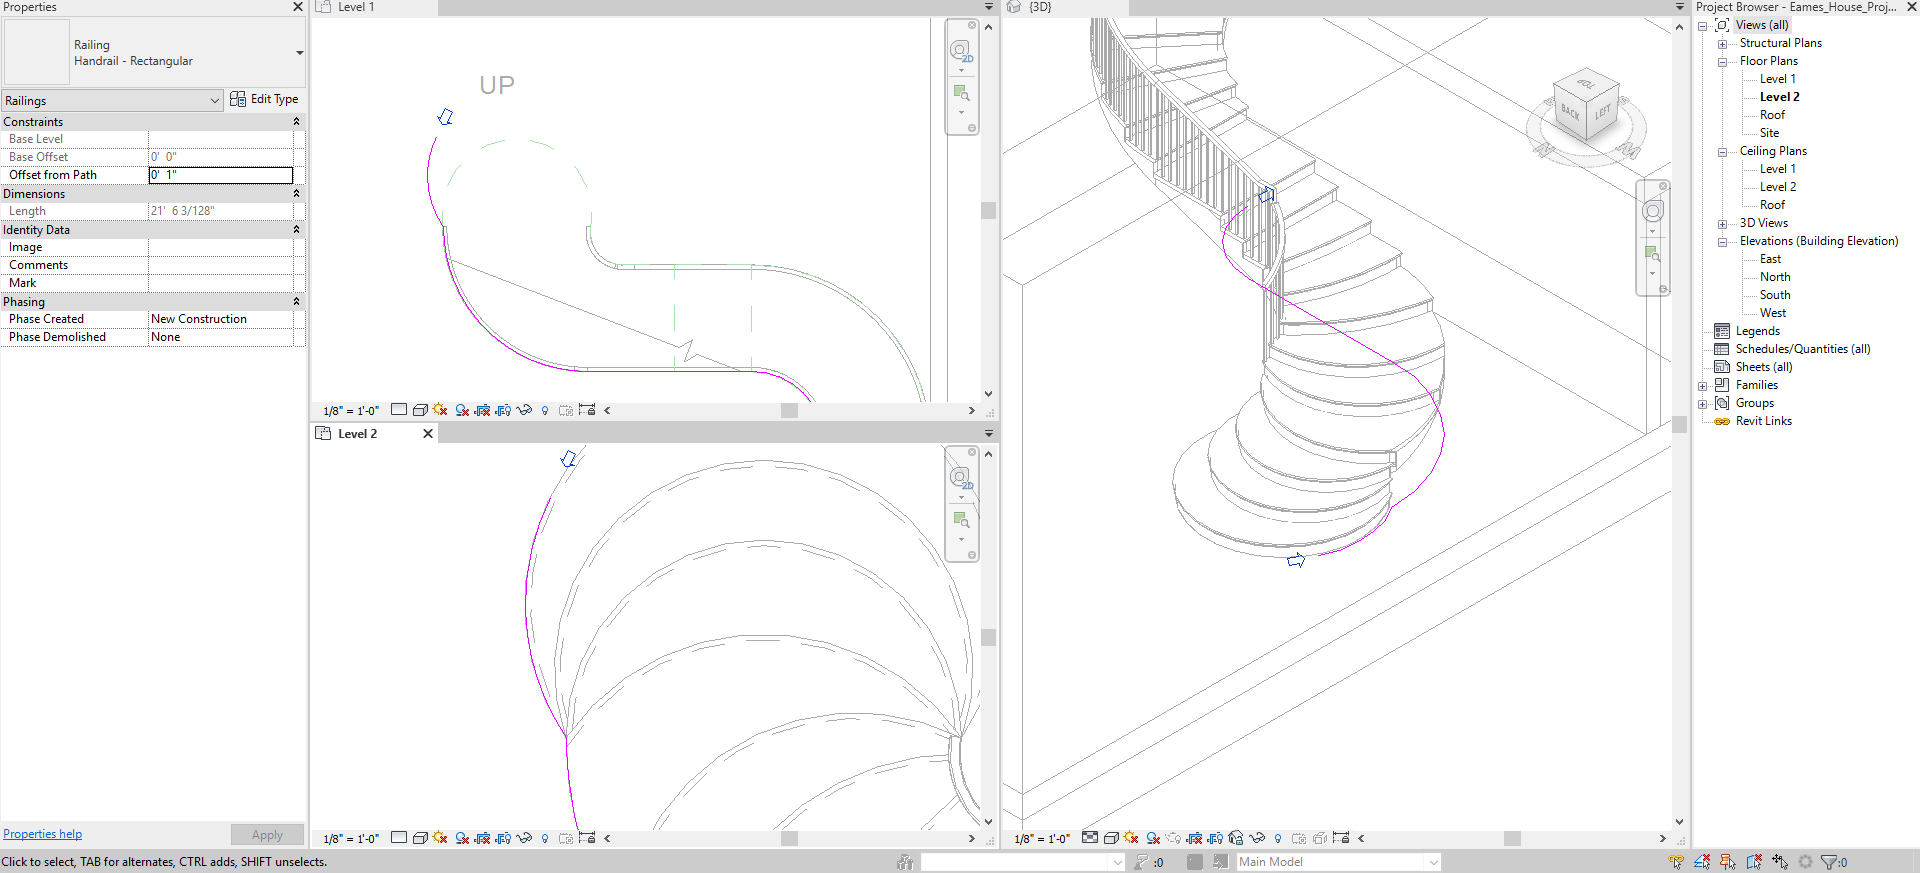 It shows the process image to edit the railing.